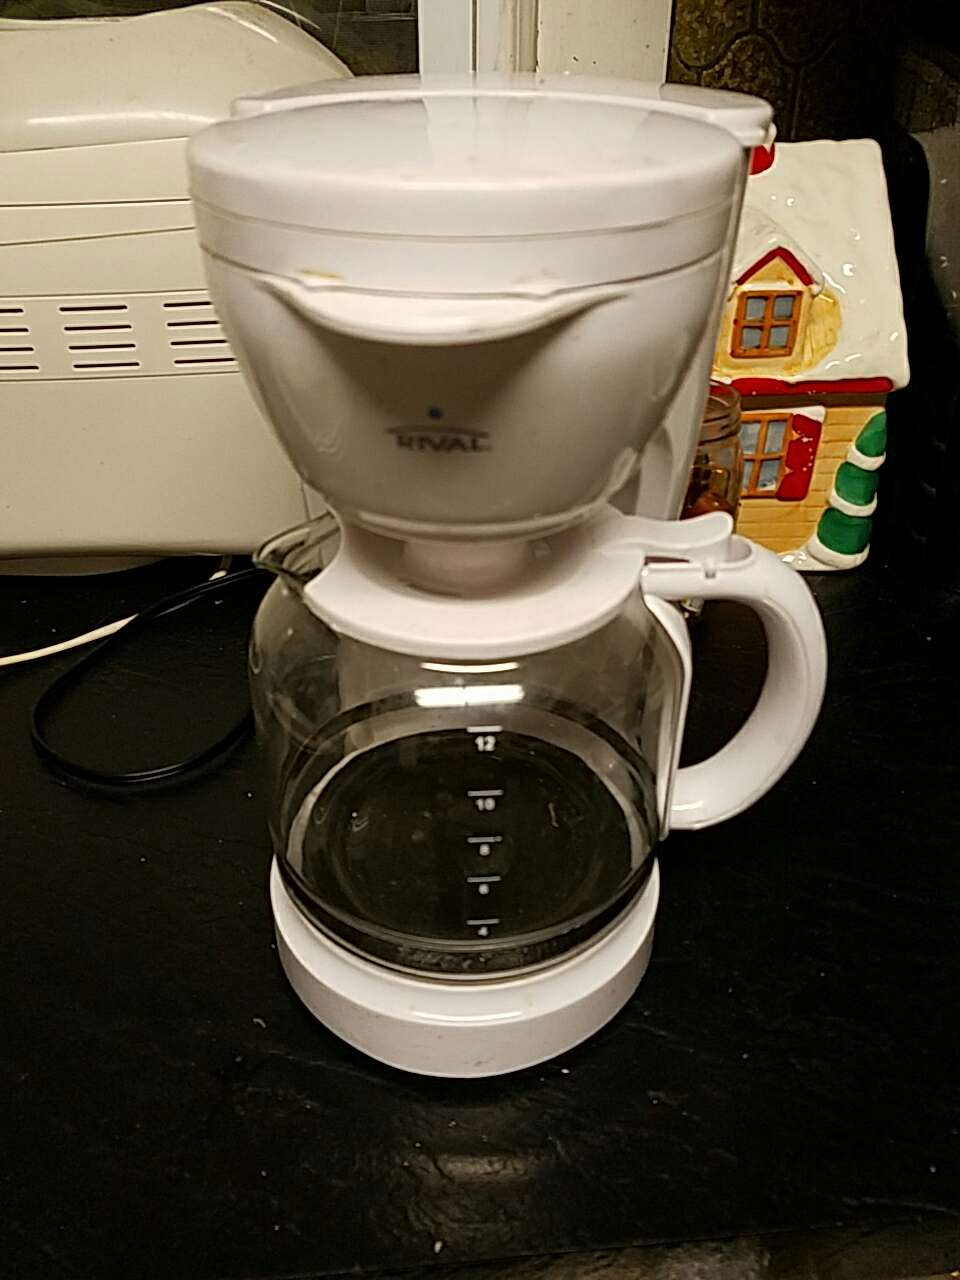 Rival Coffee Maker How To Use : letgo - white rival coffee maker in Detroit, MI